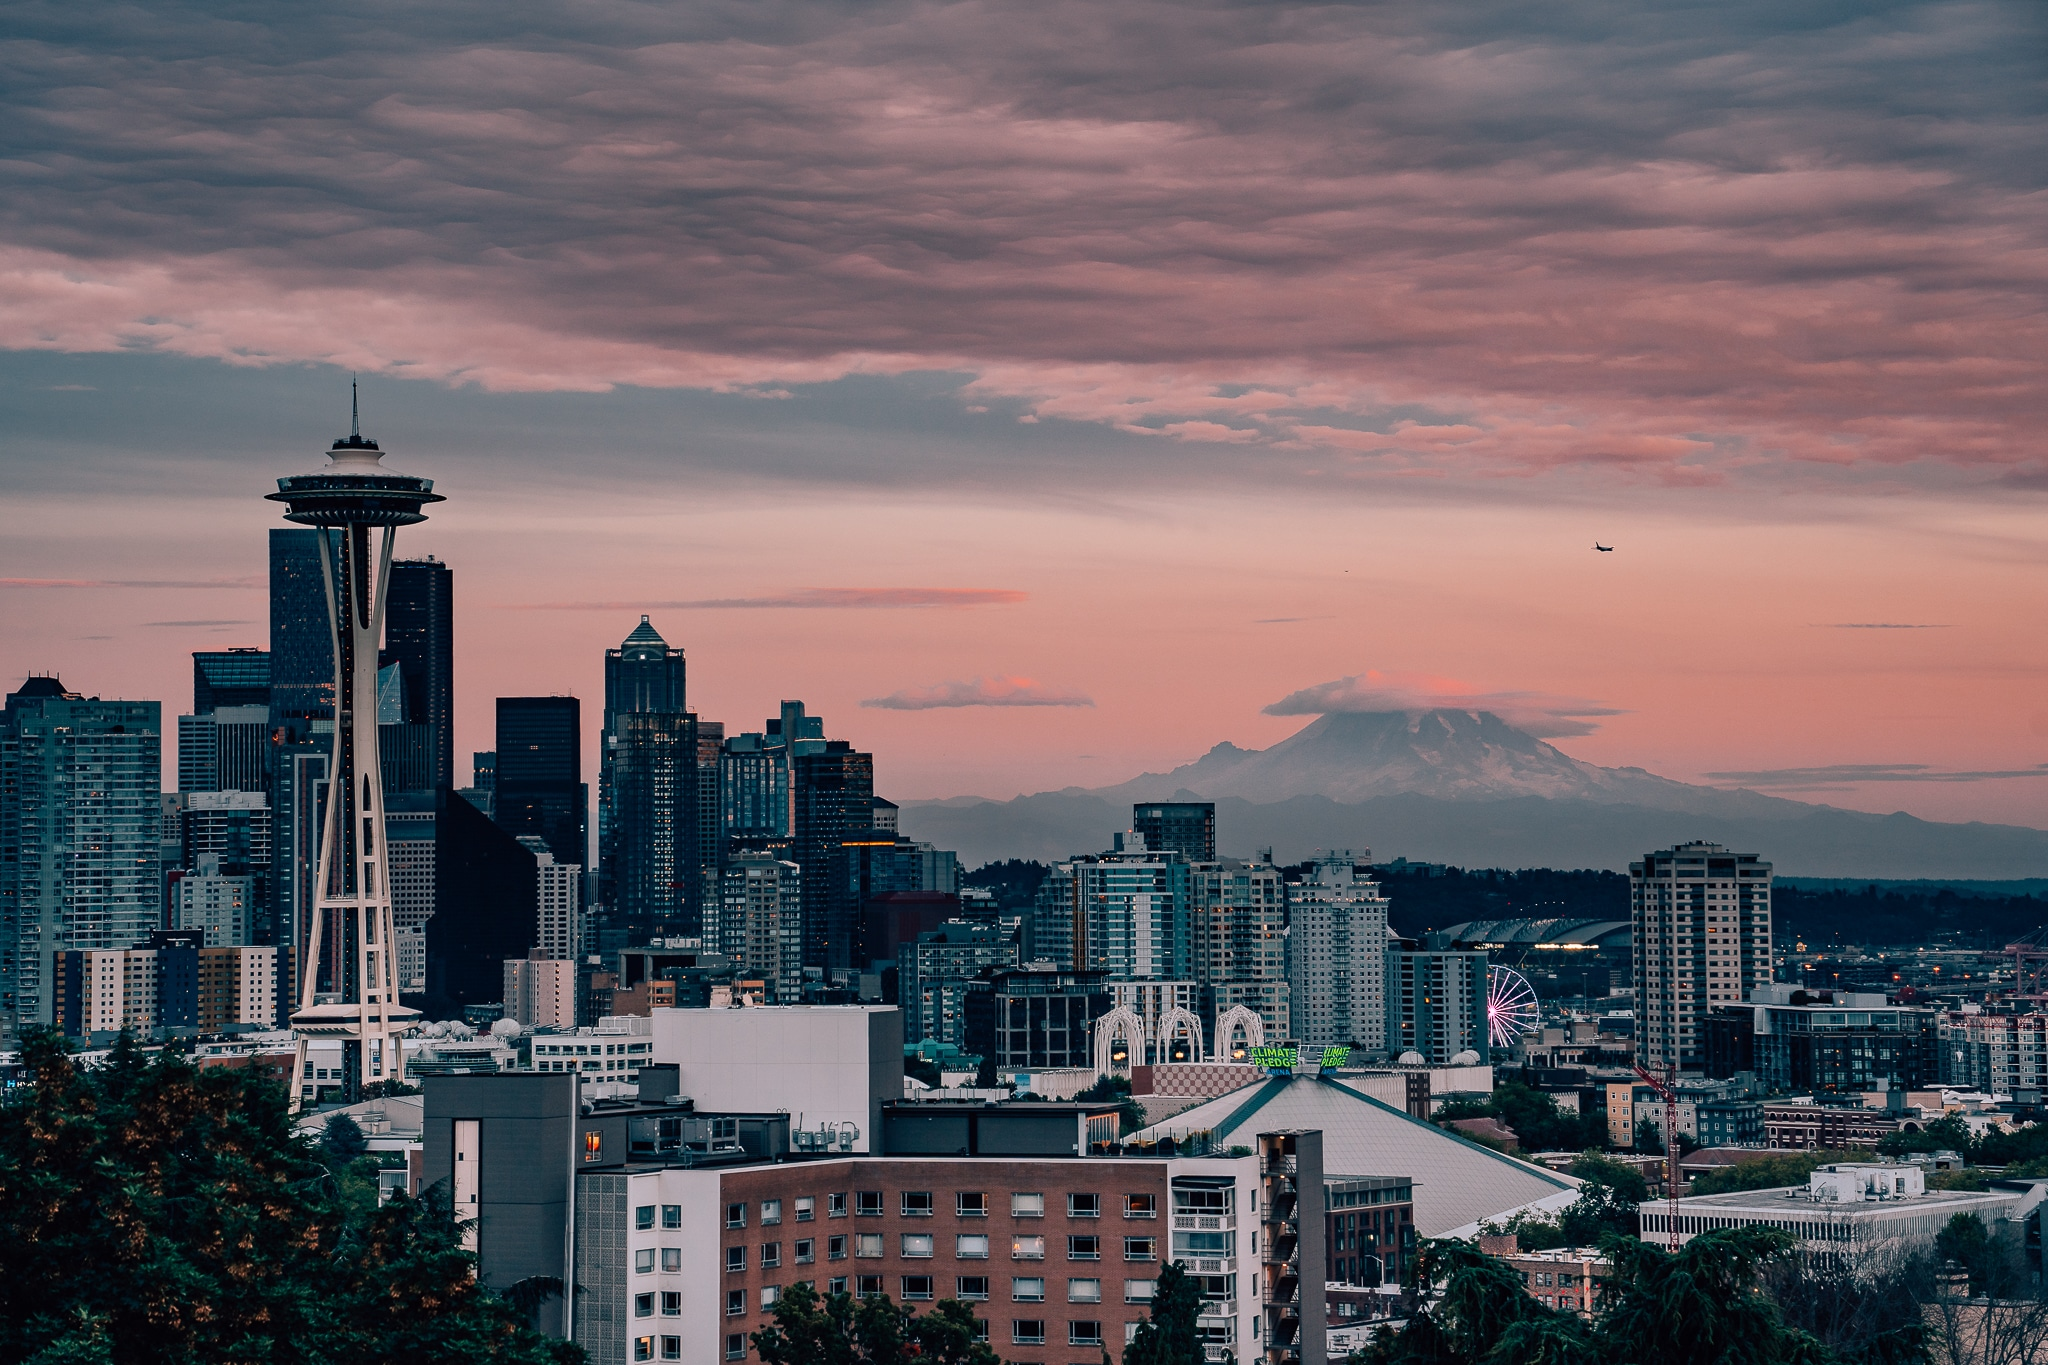 View of the Seattle skyline and Mount Rainier during sunset from Kerry Park.